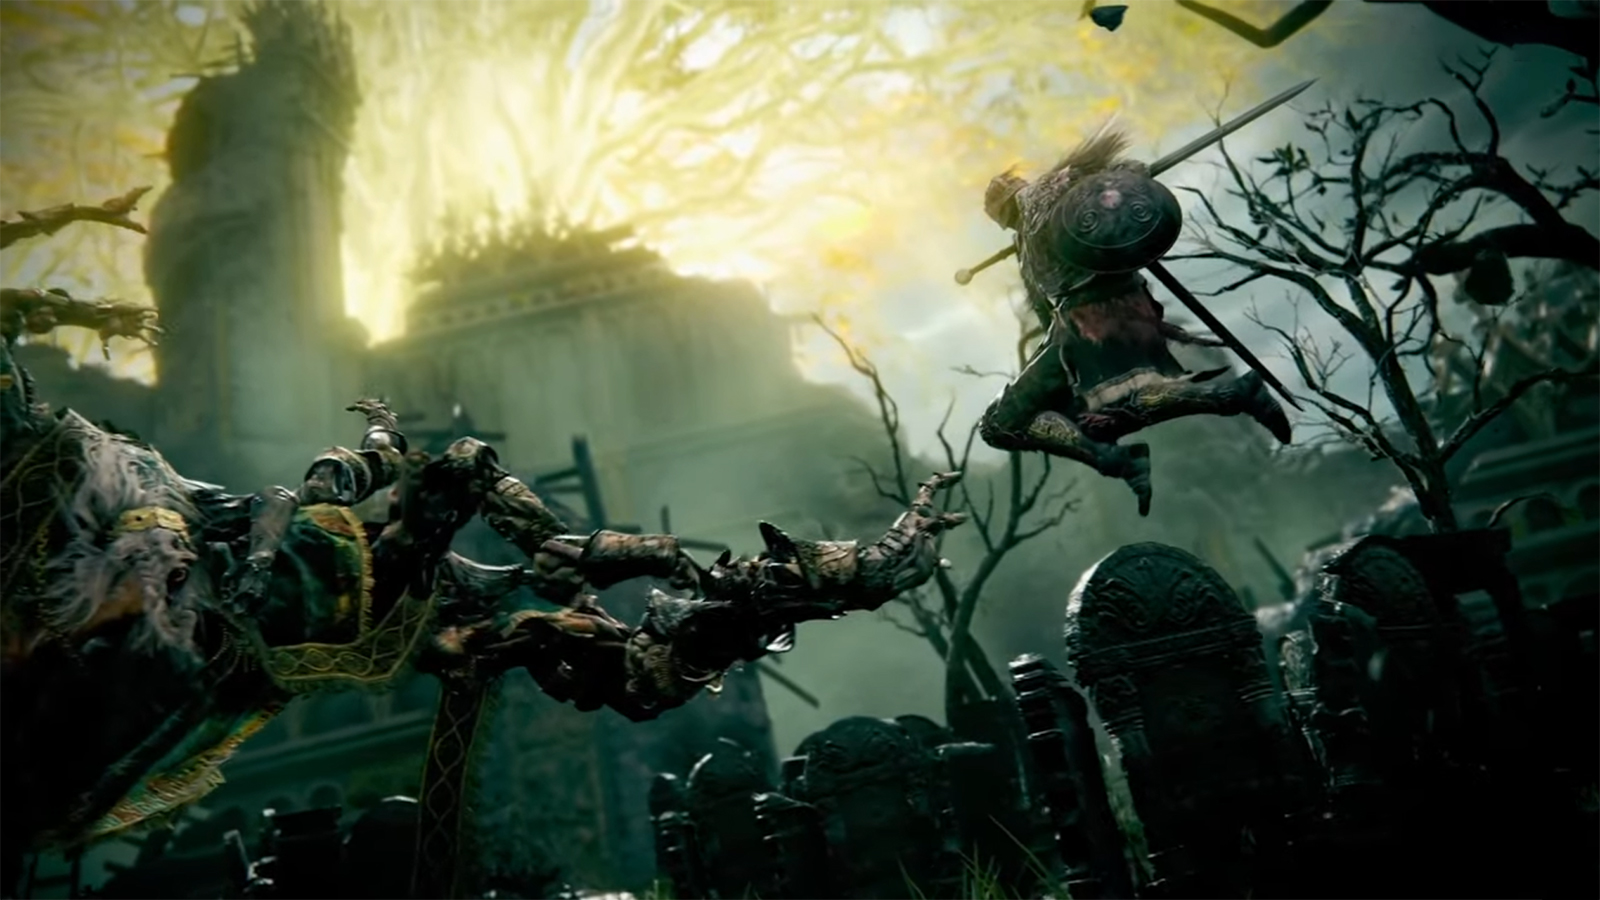 elden-ring-reveal-trailer:-five-things-you-might-have-missed